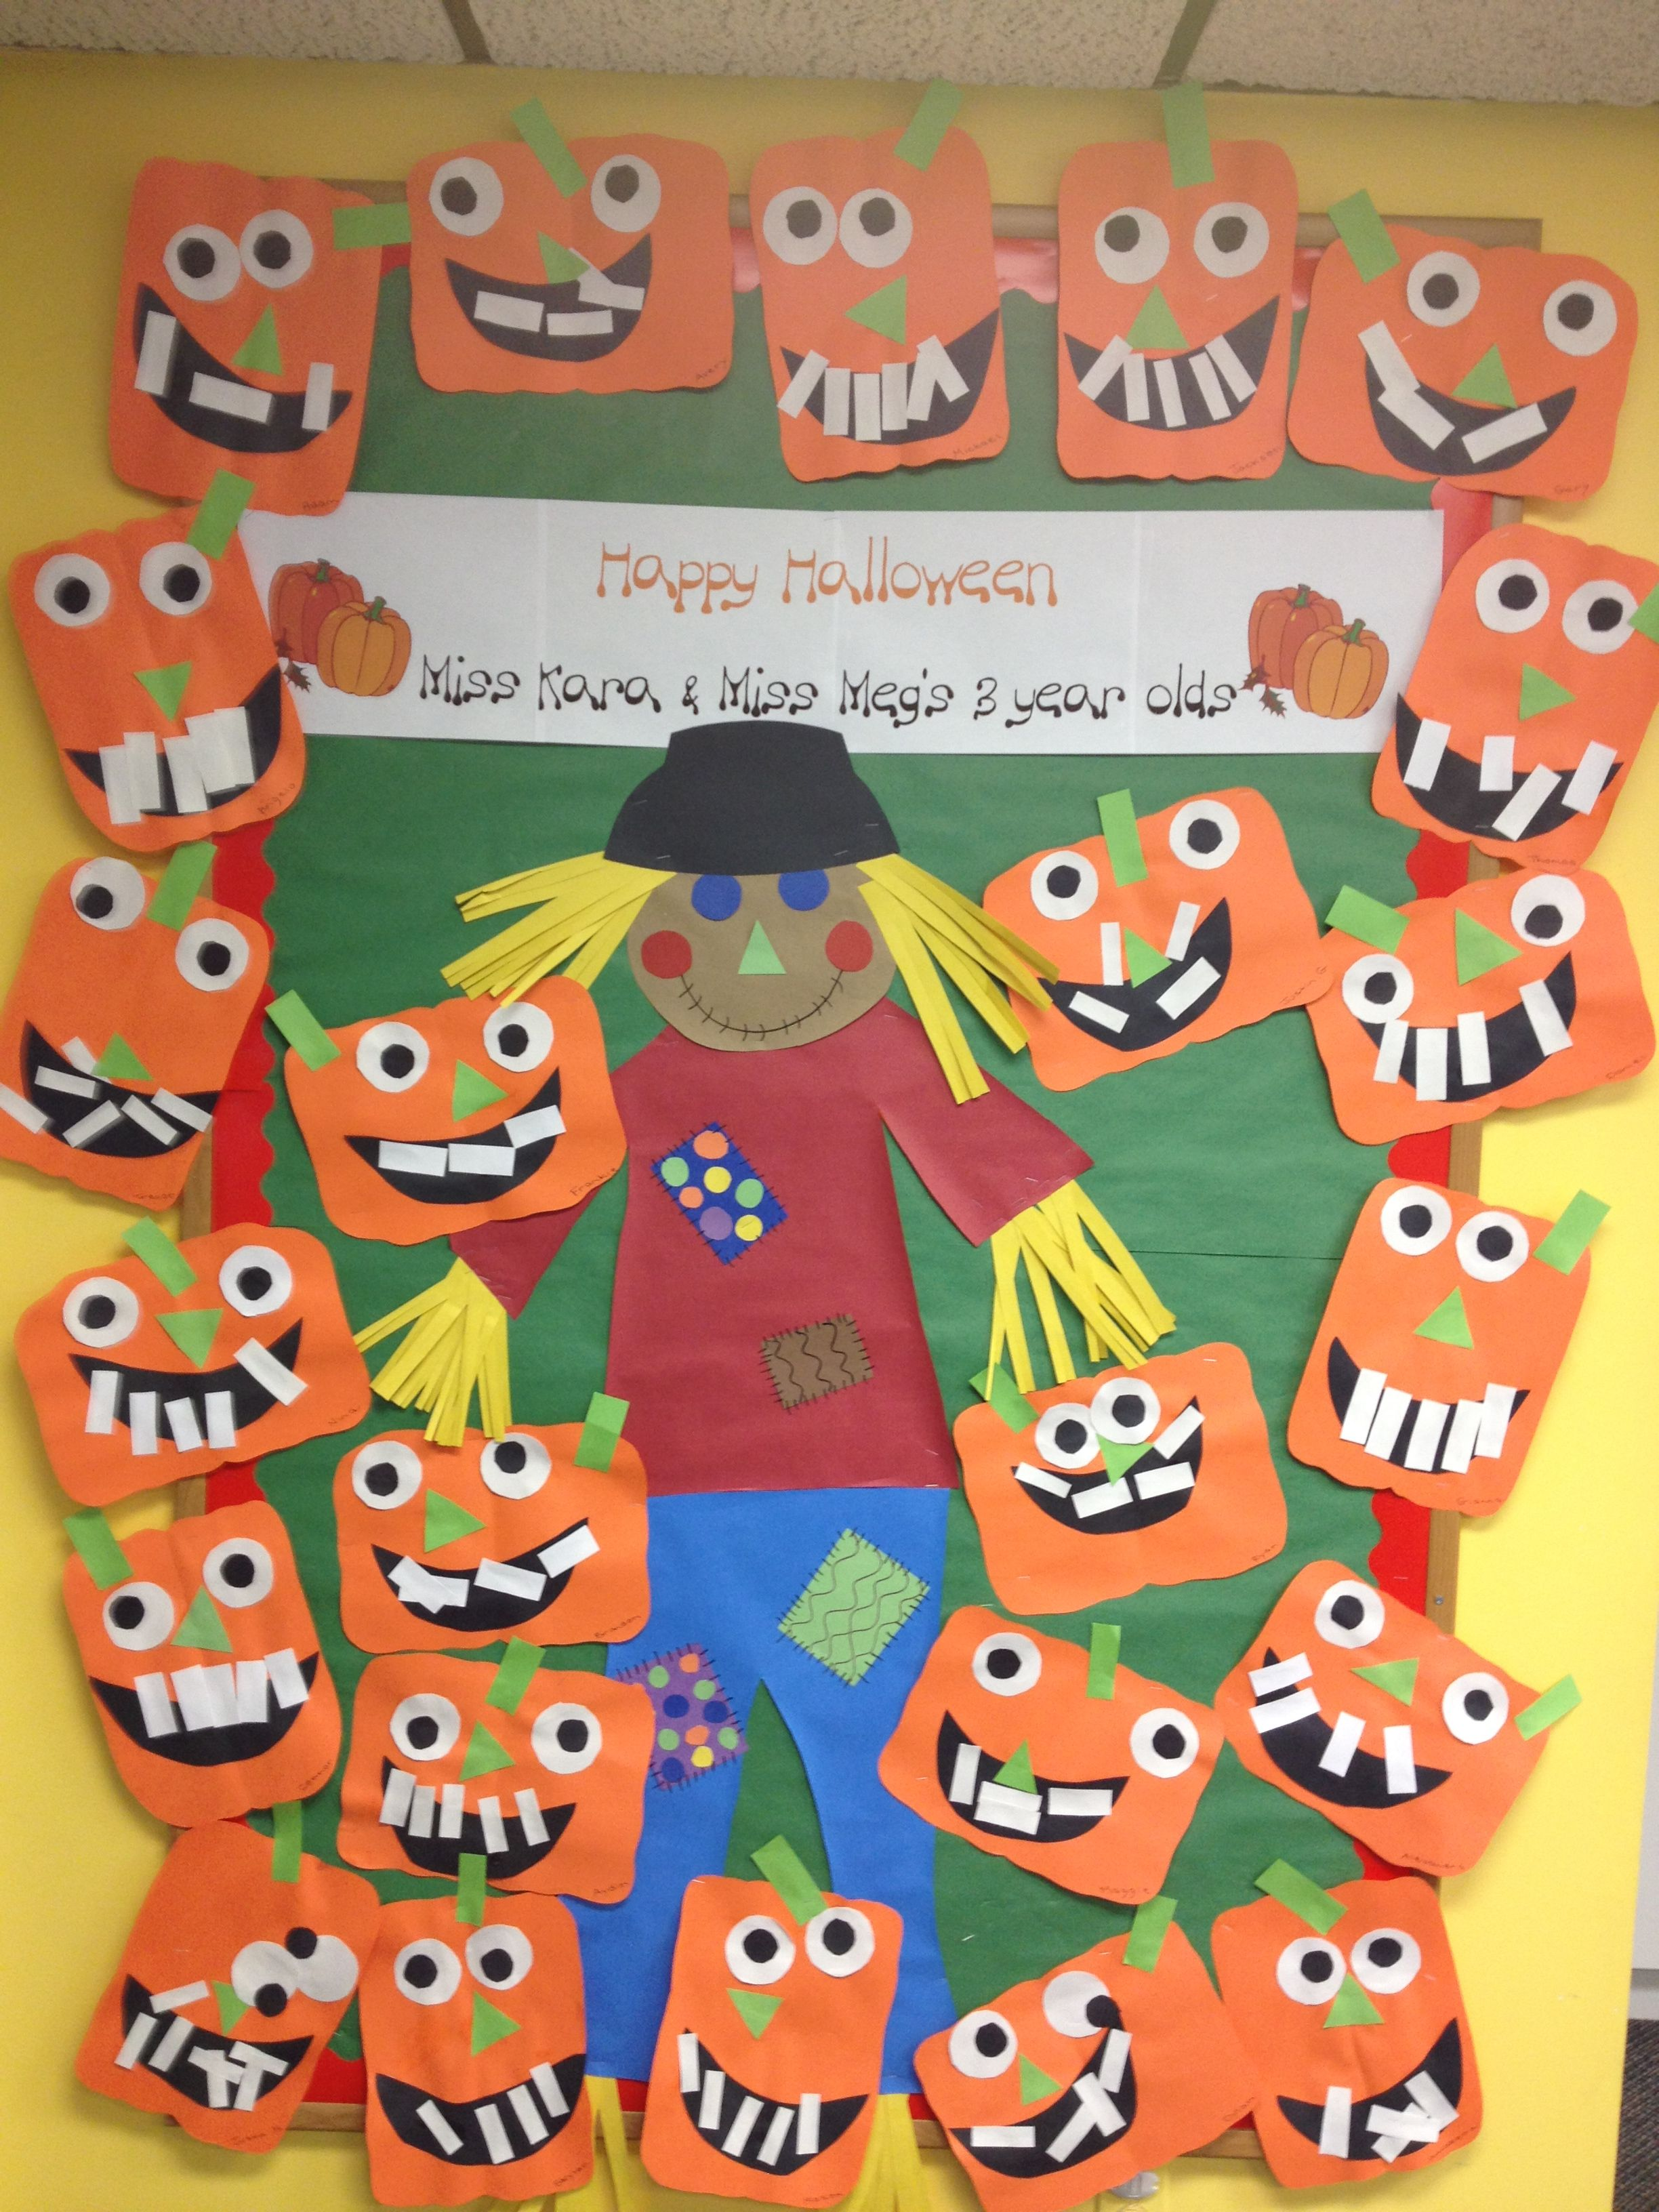 Preschool Bulletin Board Idea For Halloween